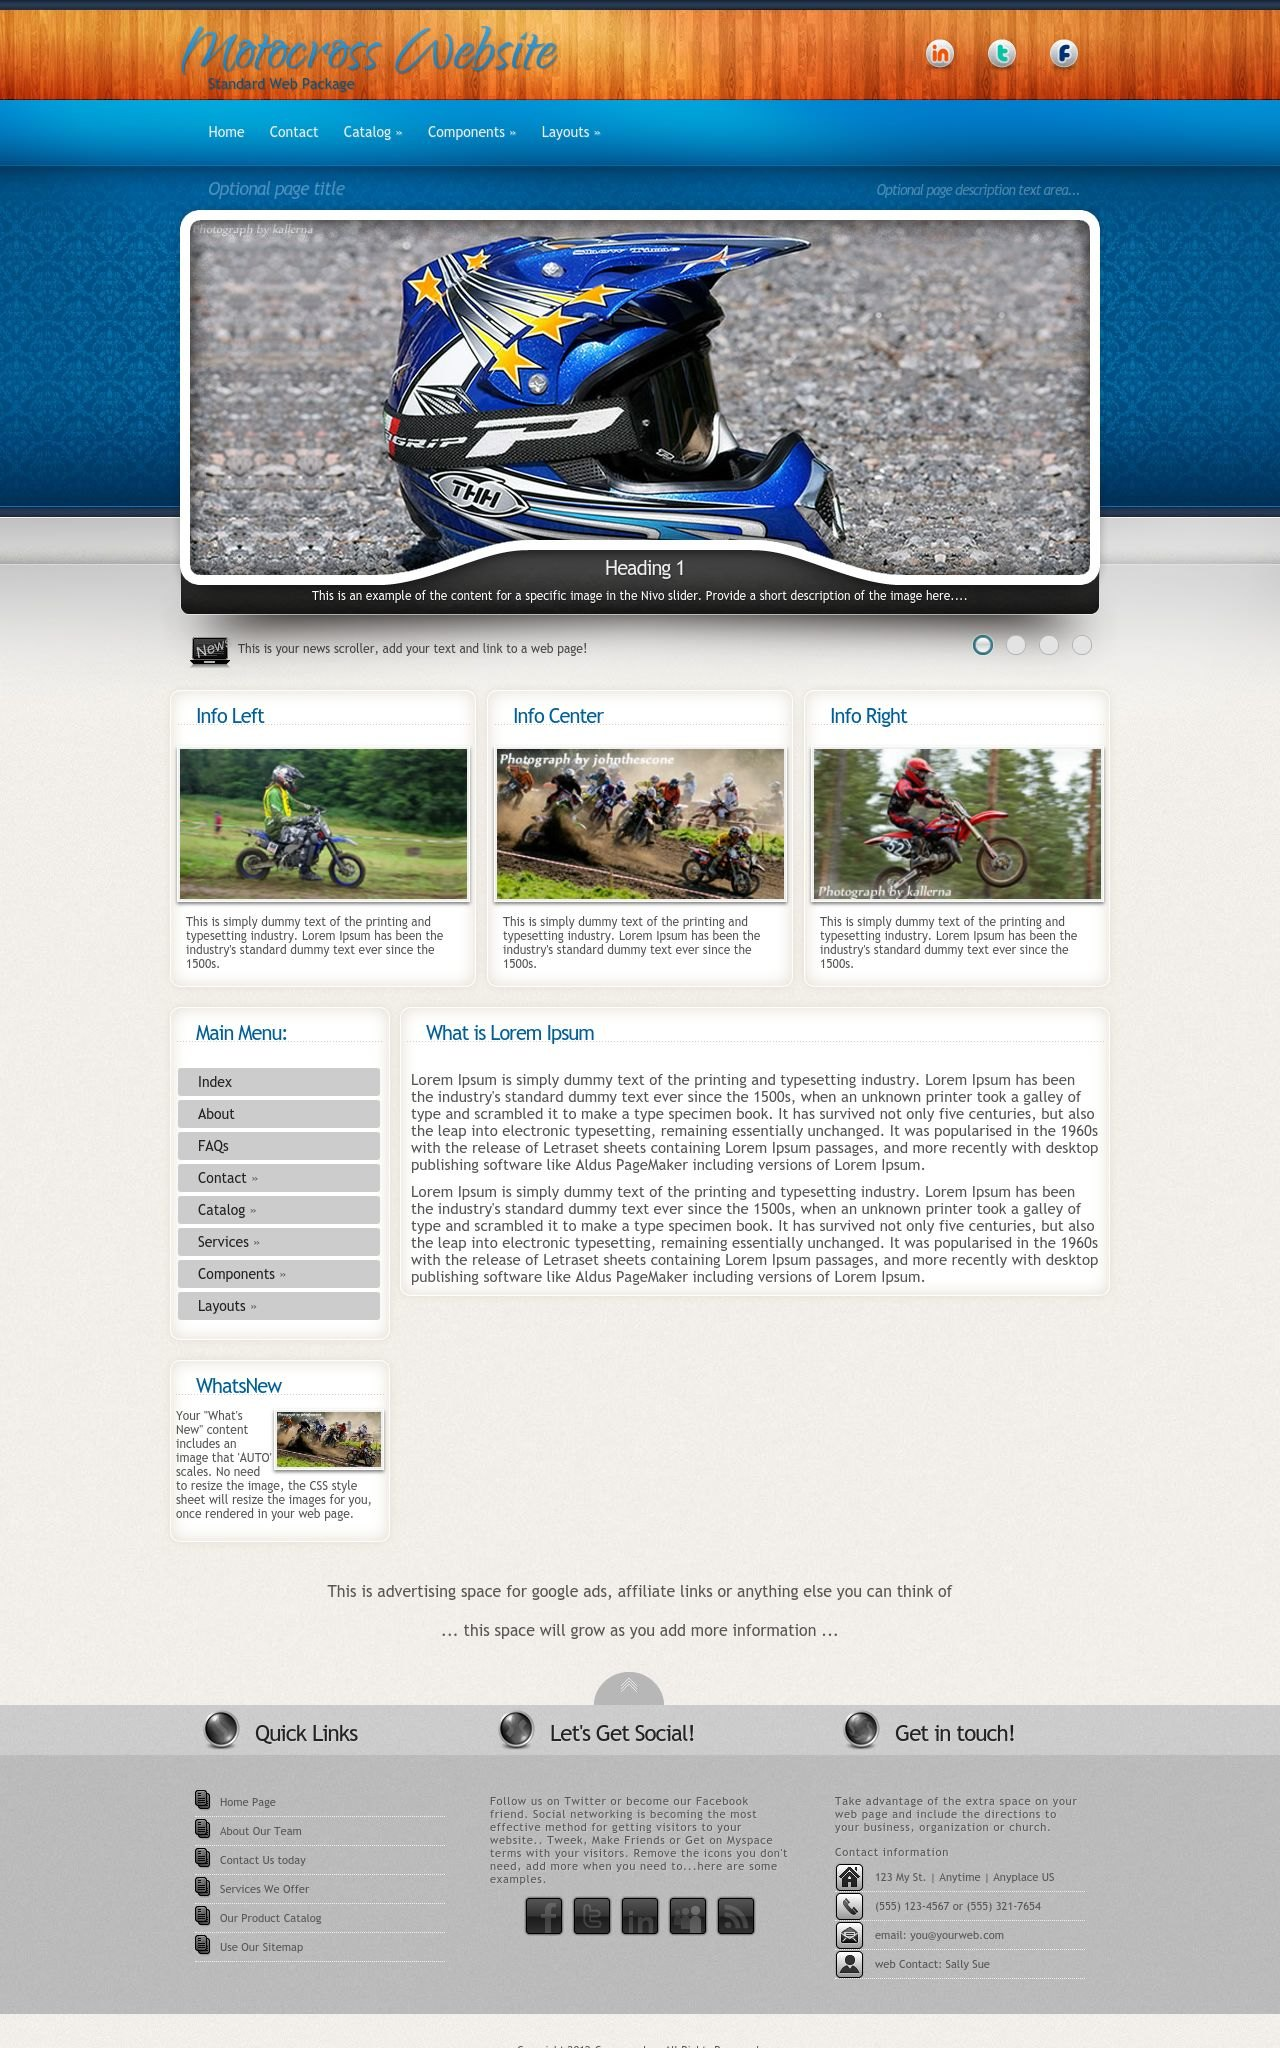 Uptown motocross blue grey motocross dreamweaver template for Dreamweaver newsletter templates